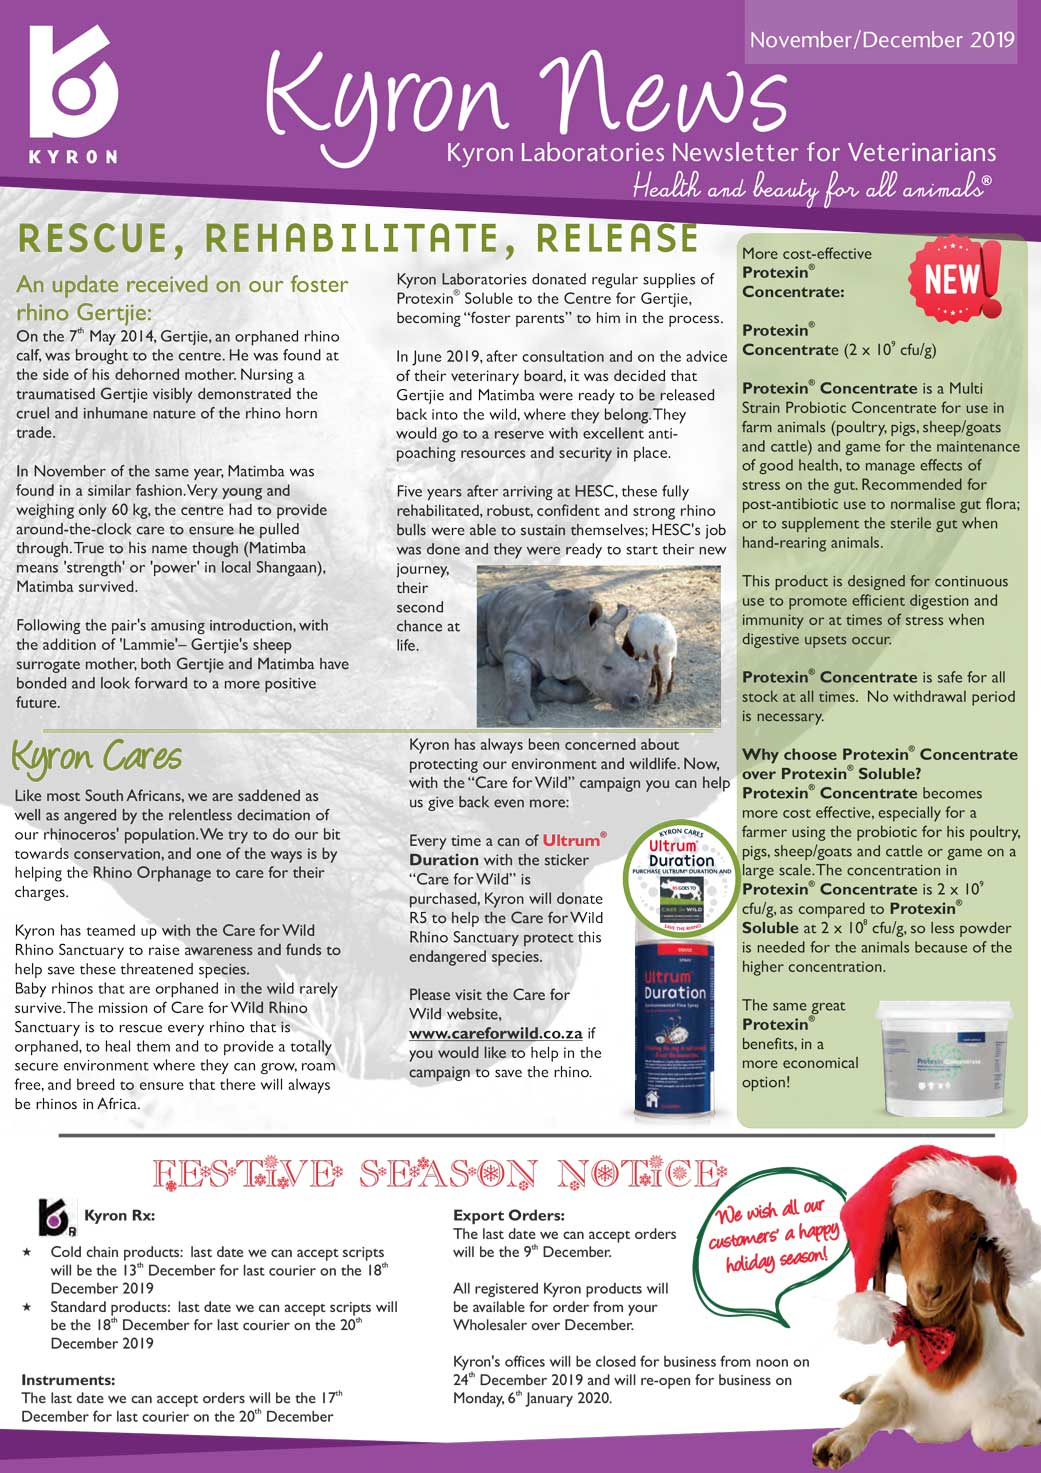 KyronNews No 84. November/December 2019